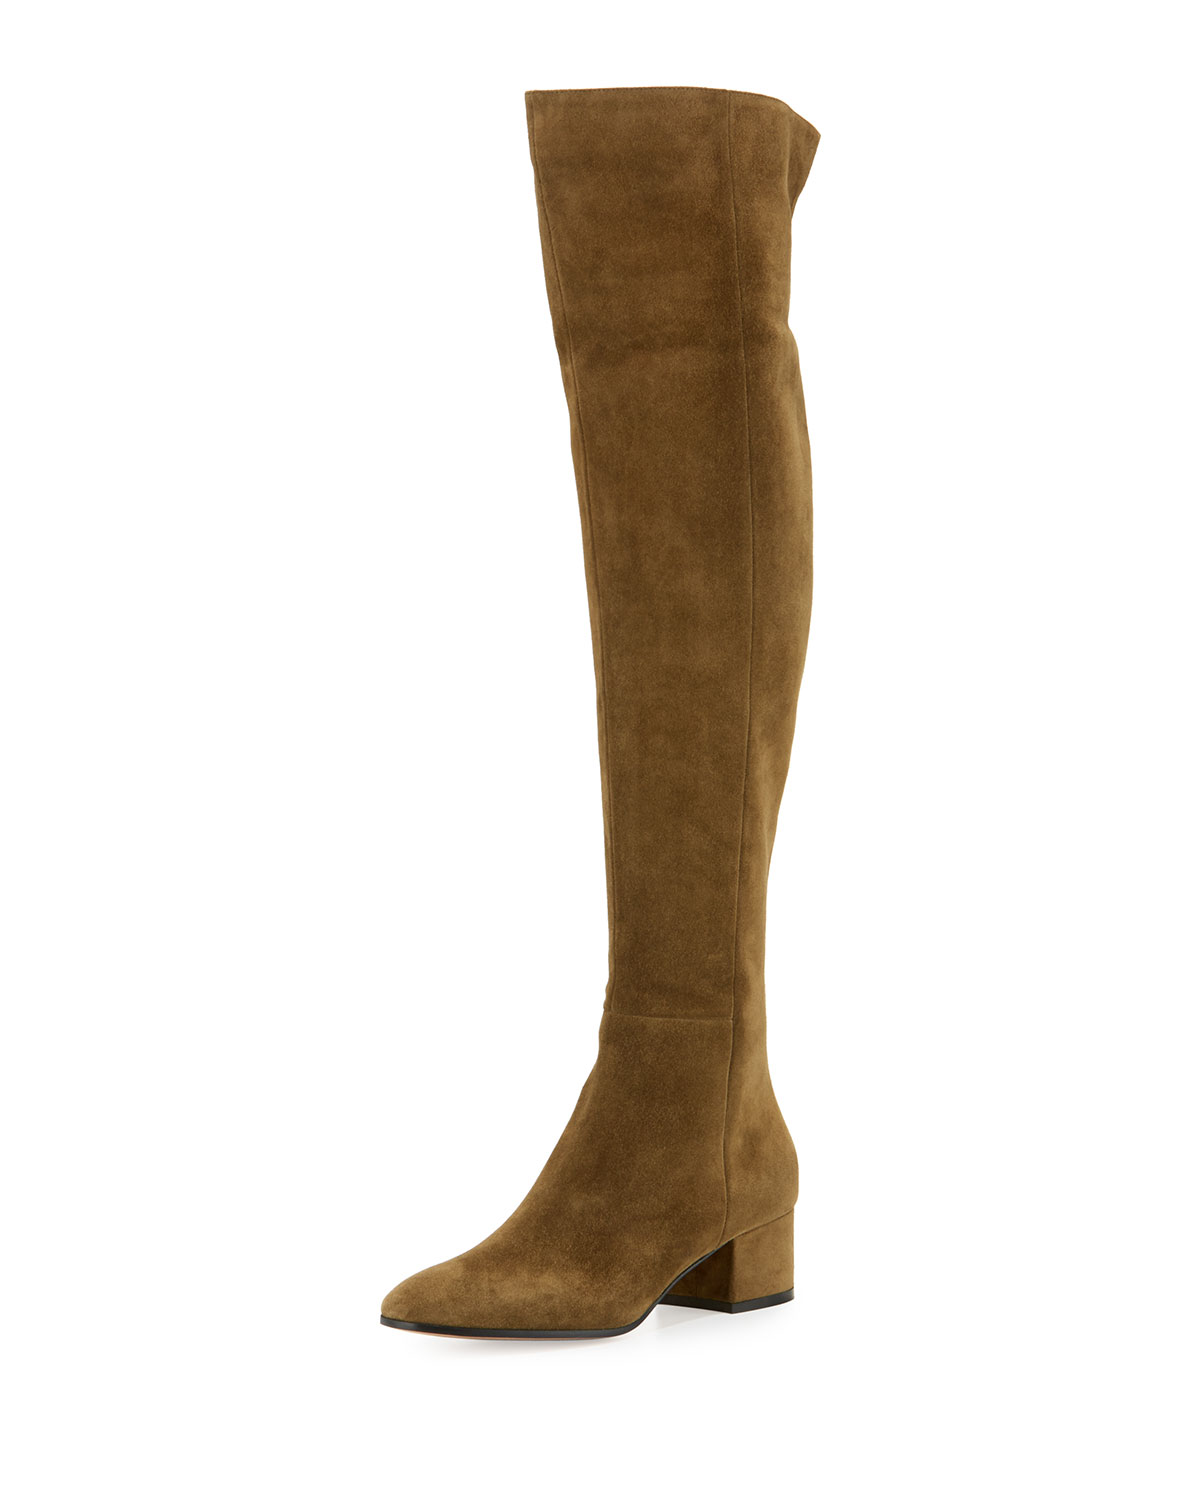 d034a5943e7 Gianvito Rossi Rolling Mid 45mm Over-the-Knee Boot